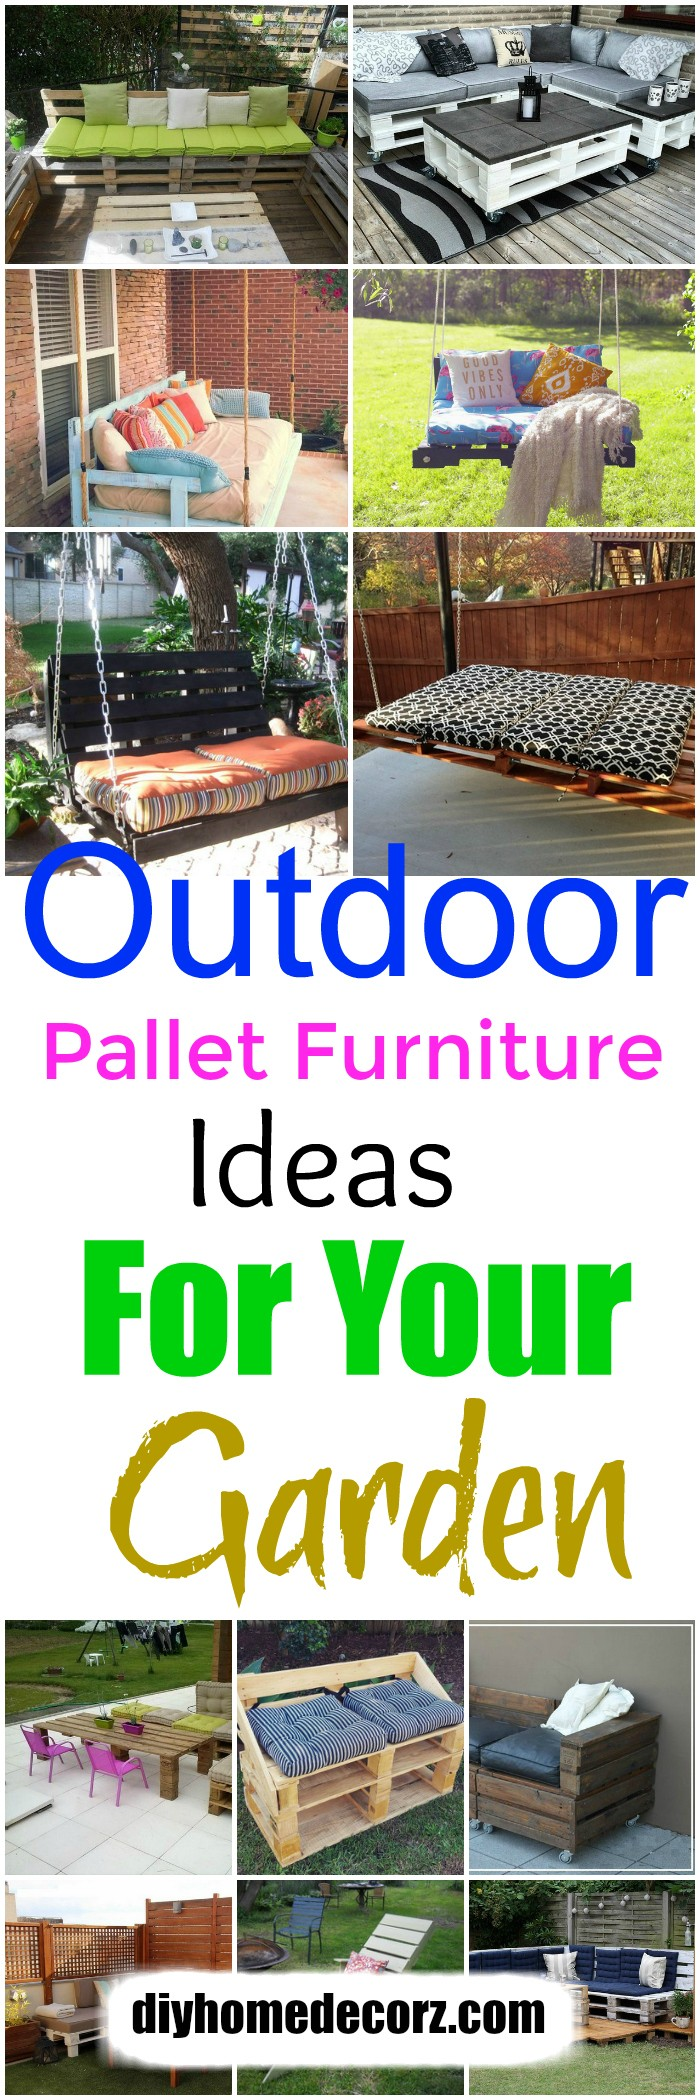 Outdoor Pallet Furniture Ideas For Your Garden Outdoor Pallet Furniture Ideas For Your Garden